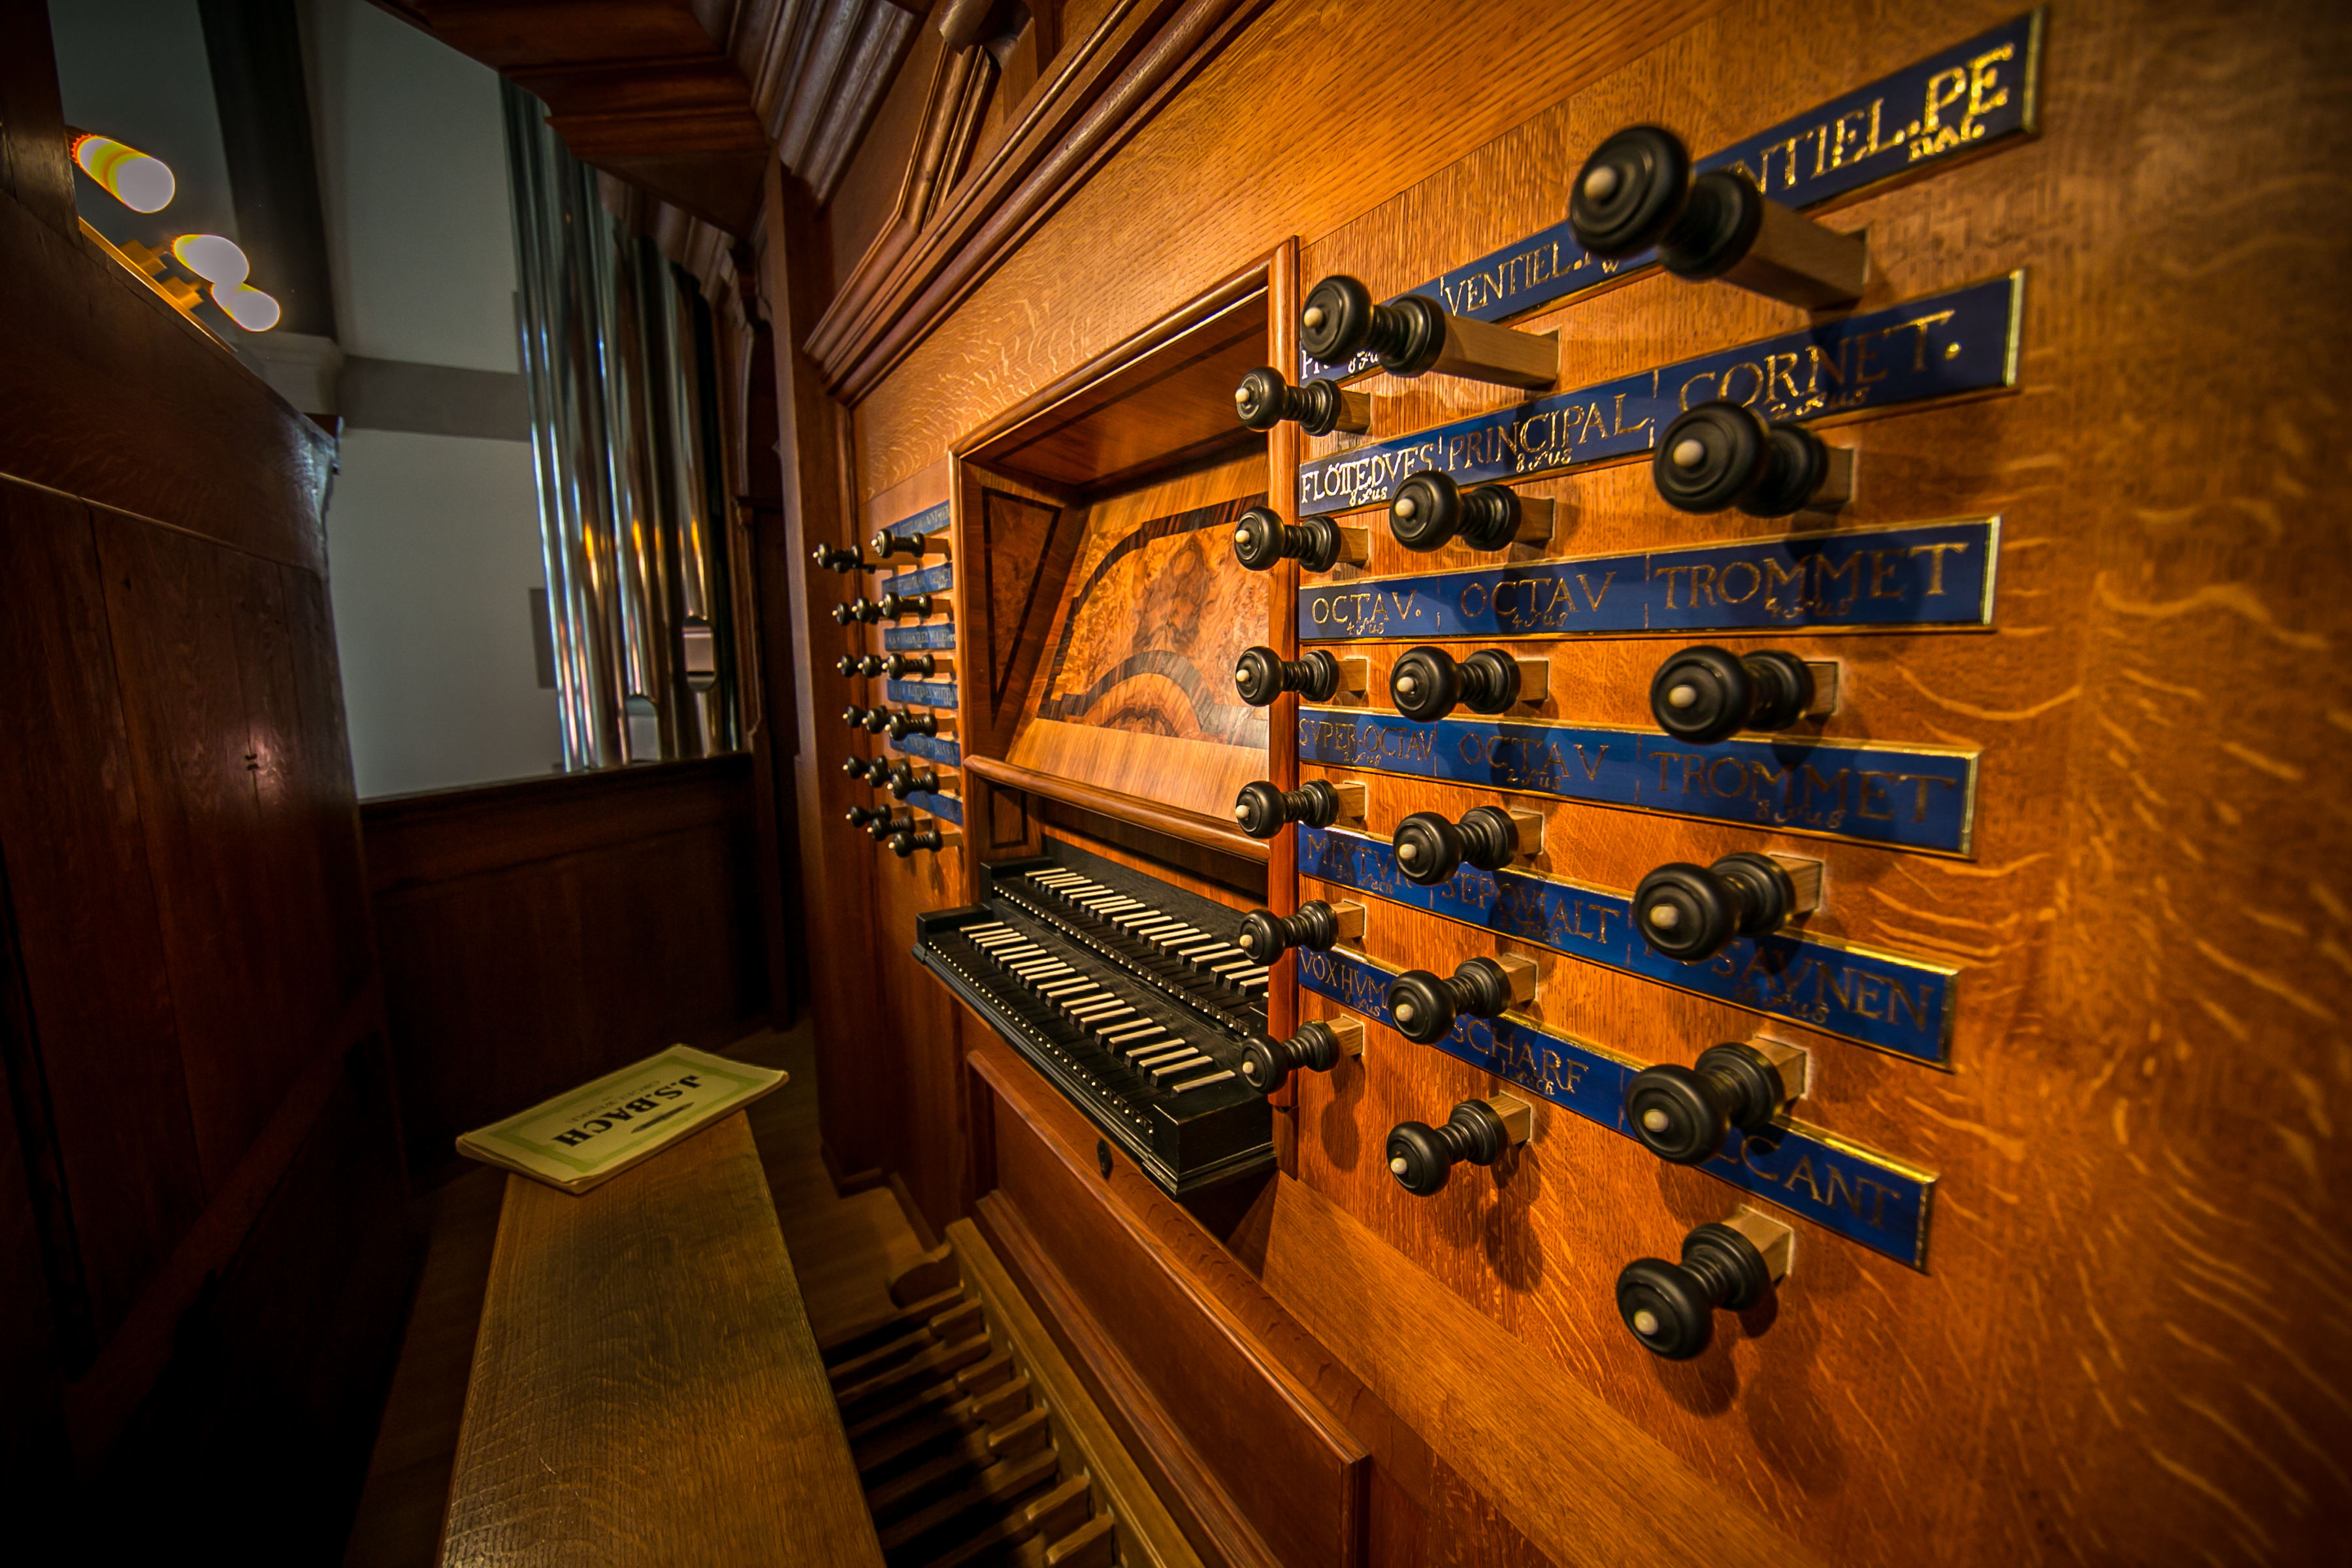 Richards usually plays either the new baroque organ in Anabel Taylor Hall or the mid-20th-century Aeolian-Skinner organ in Sage Chapel when she performs at Cornell.